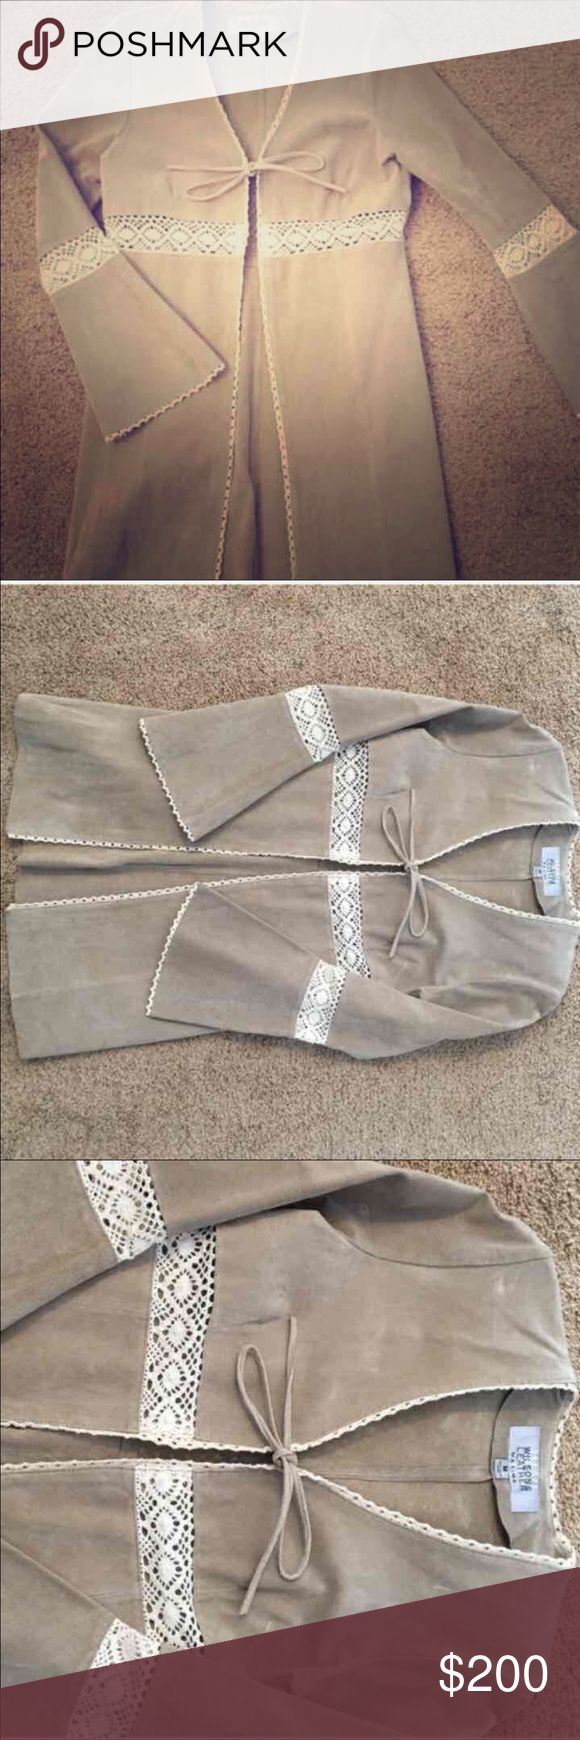 Open to all offers~~Vintage leather jacket Beige colored, never worn leather jacket/coat. Ties in front. Comes down to about mid to high thigh. Crochet cut outs around elbows and stomach /under bust area. Size M. This is true vintage and very beautiful. Open to offers on this. Hate to let it go but it's not my size and it's too beautiful to sit in my closet any longer. Needs a good home❤️ Wilsons Leather Jackets & Coats